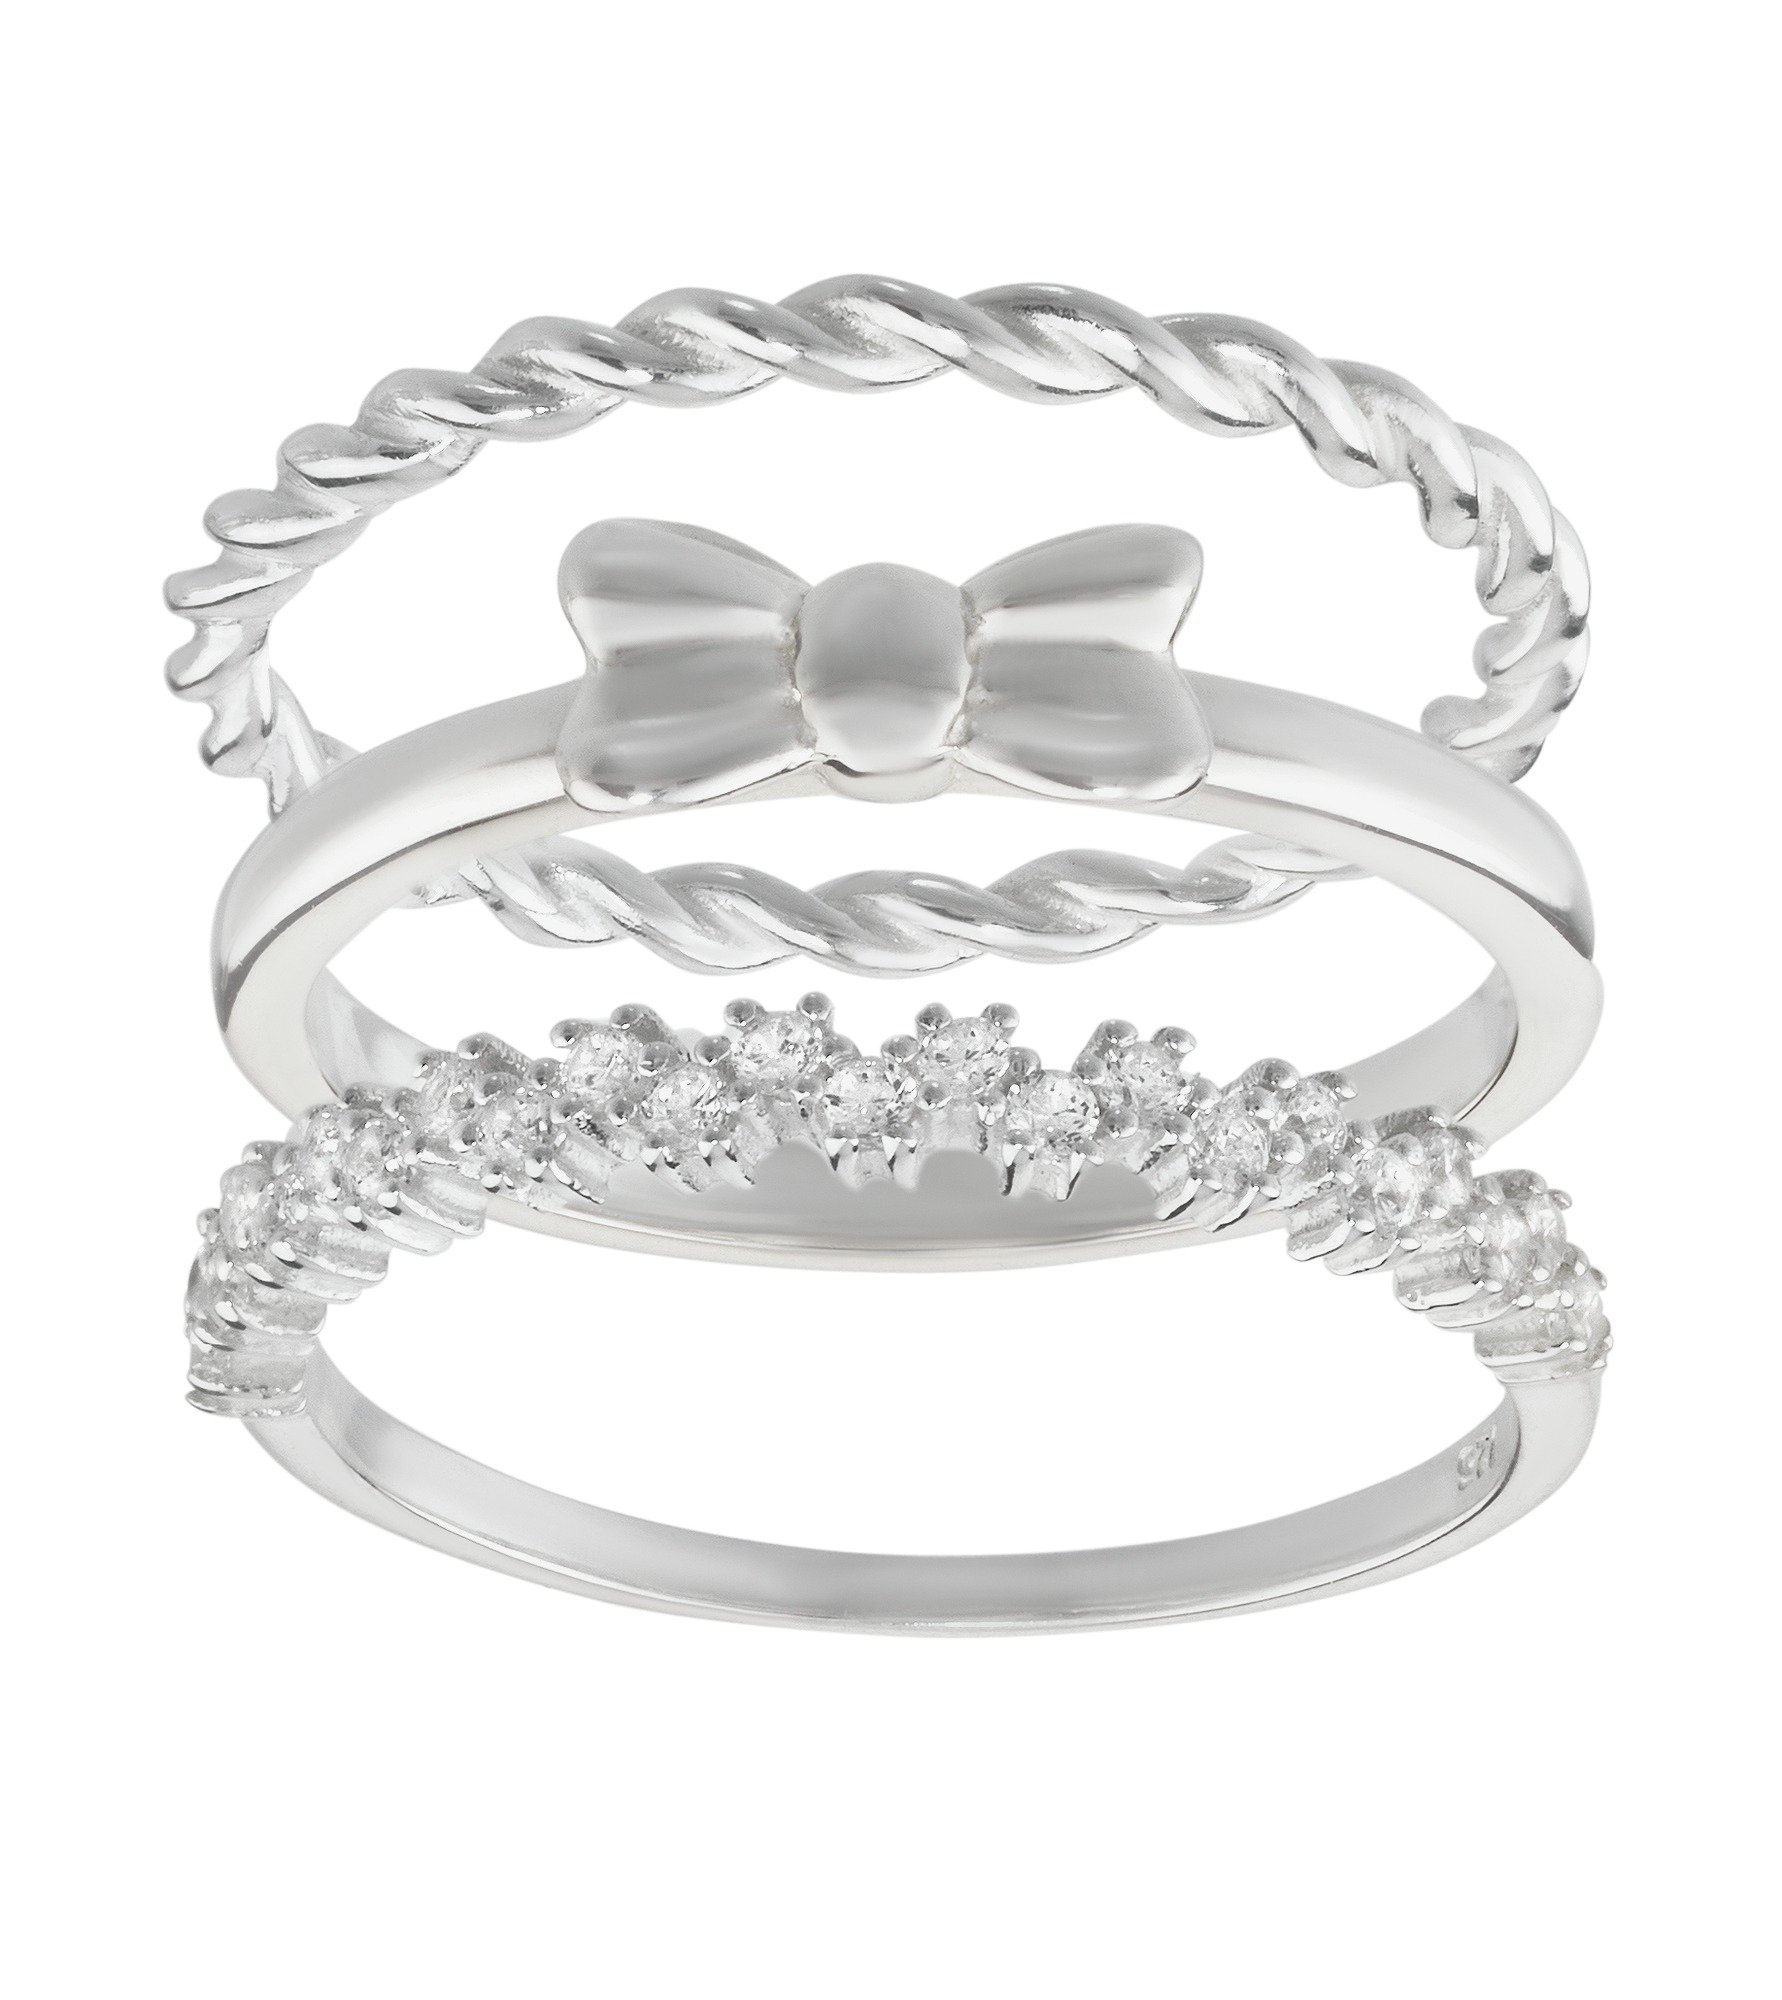 buy virtue sterling silver ring set of 3 at argos co uk